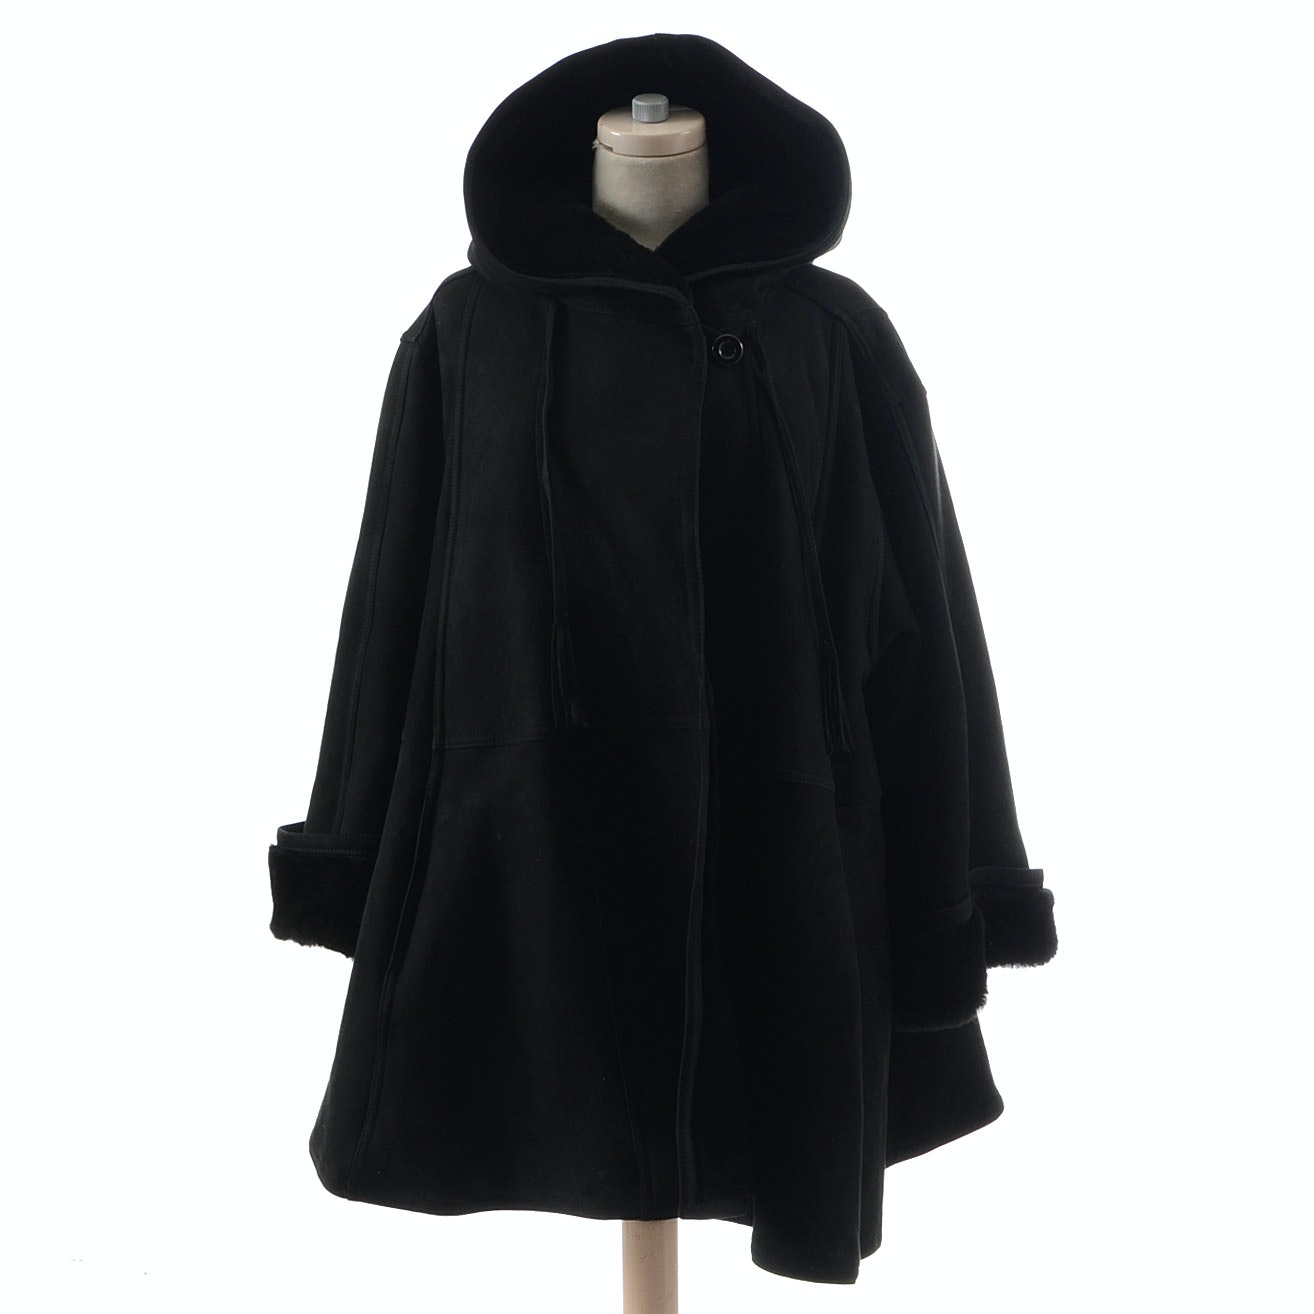 Black Suede Leather Hooded Swing Coat with Faux Fur Lining From Bergdorf Goodman On The Plaza New York